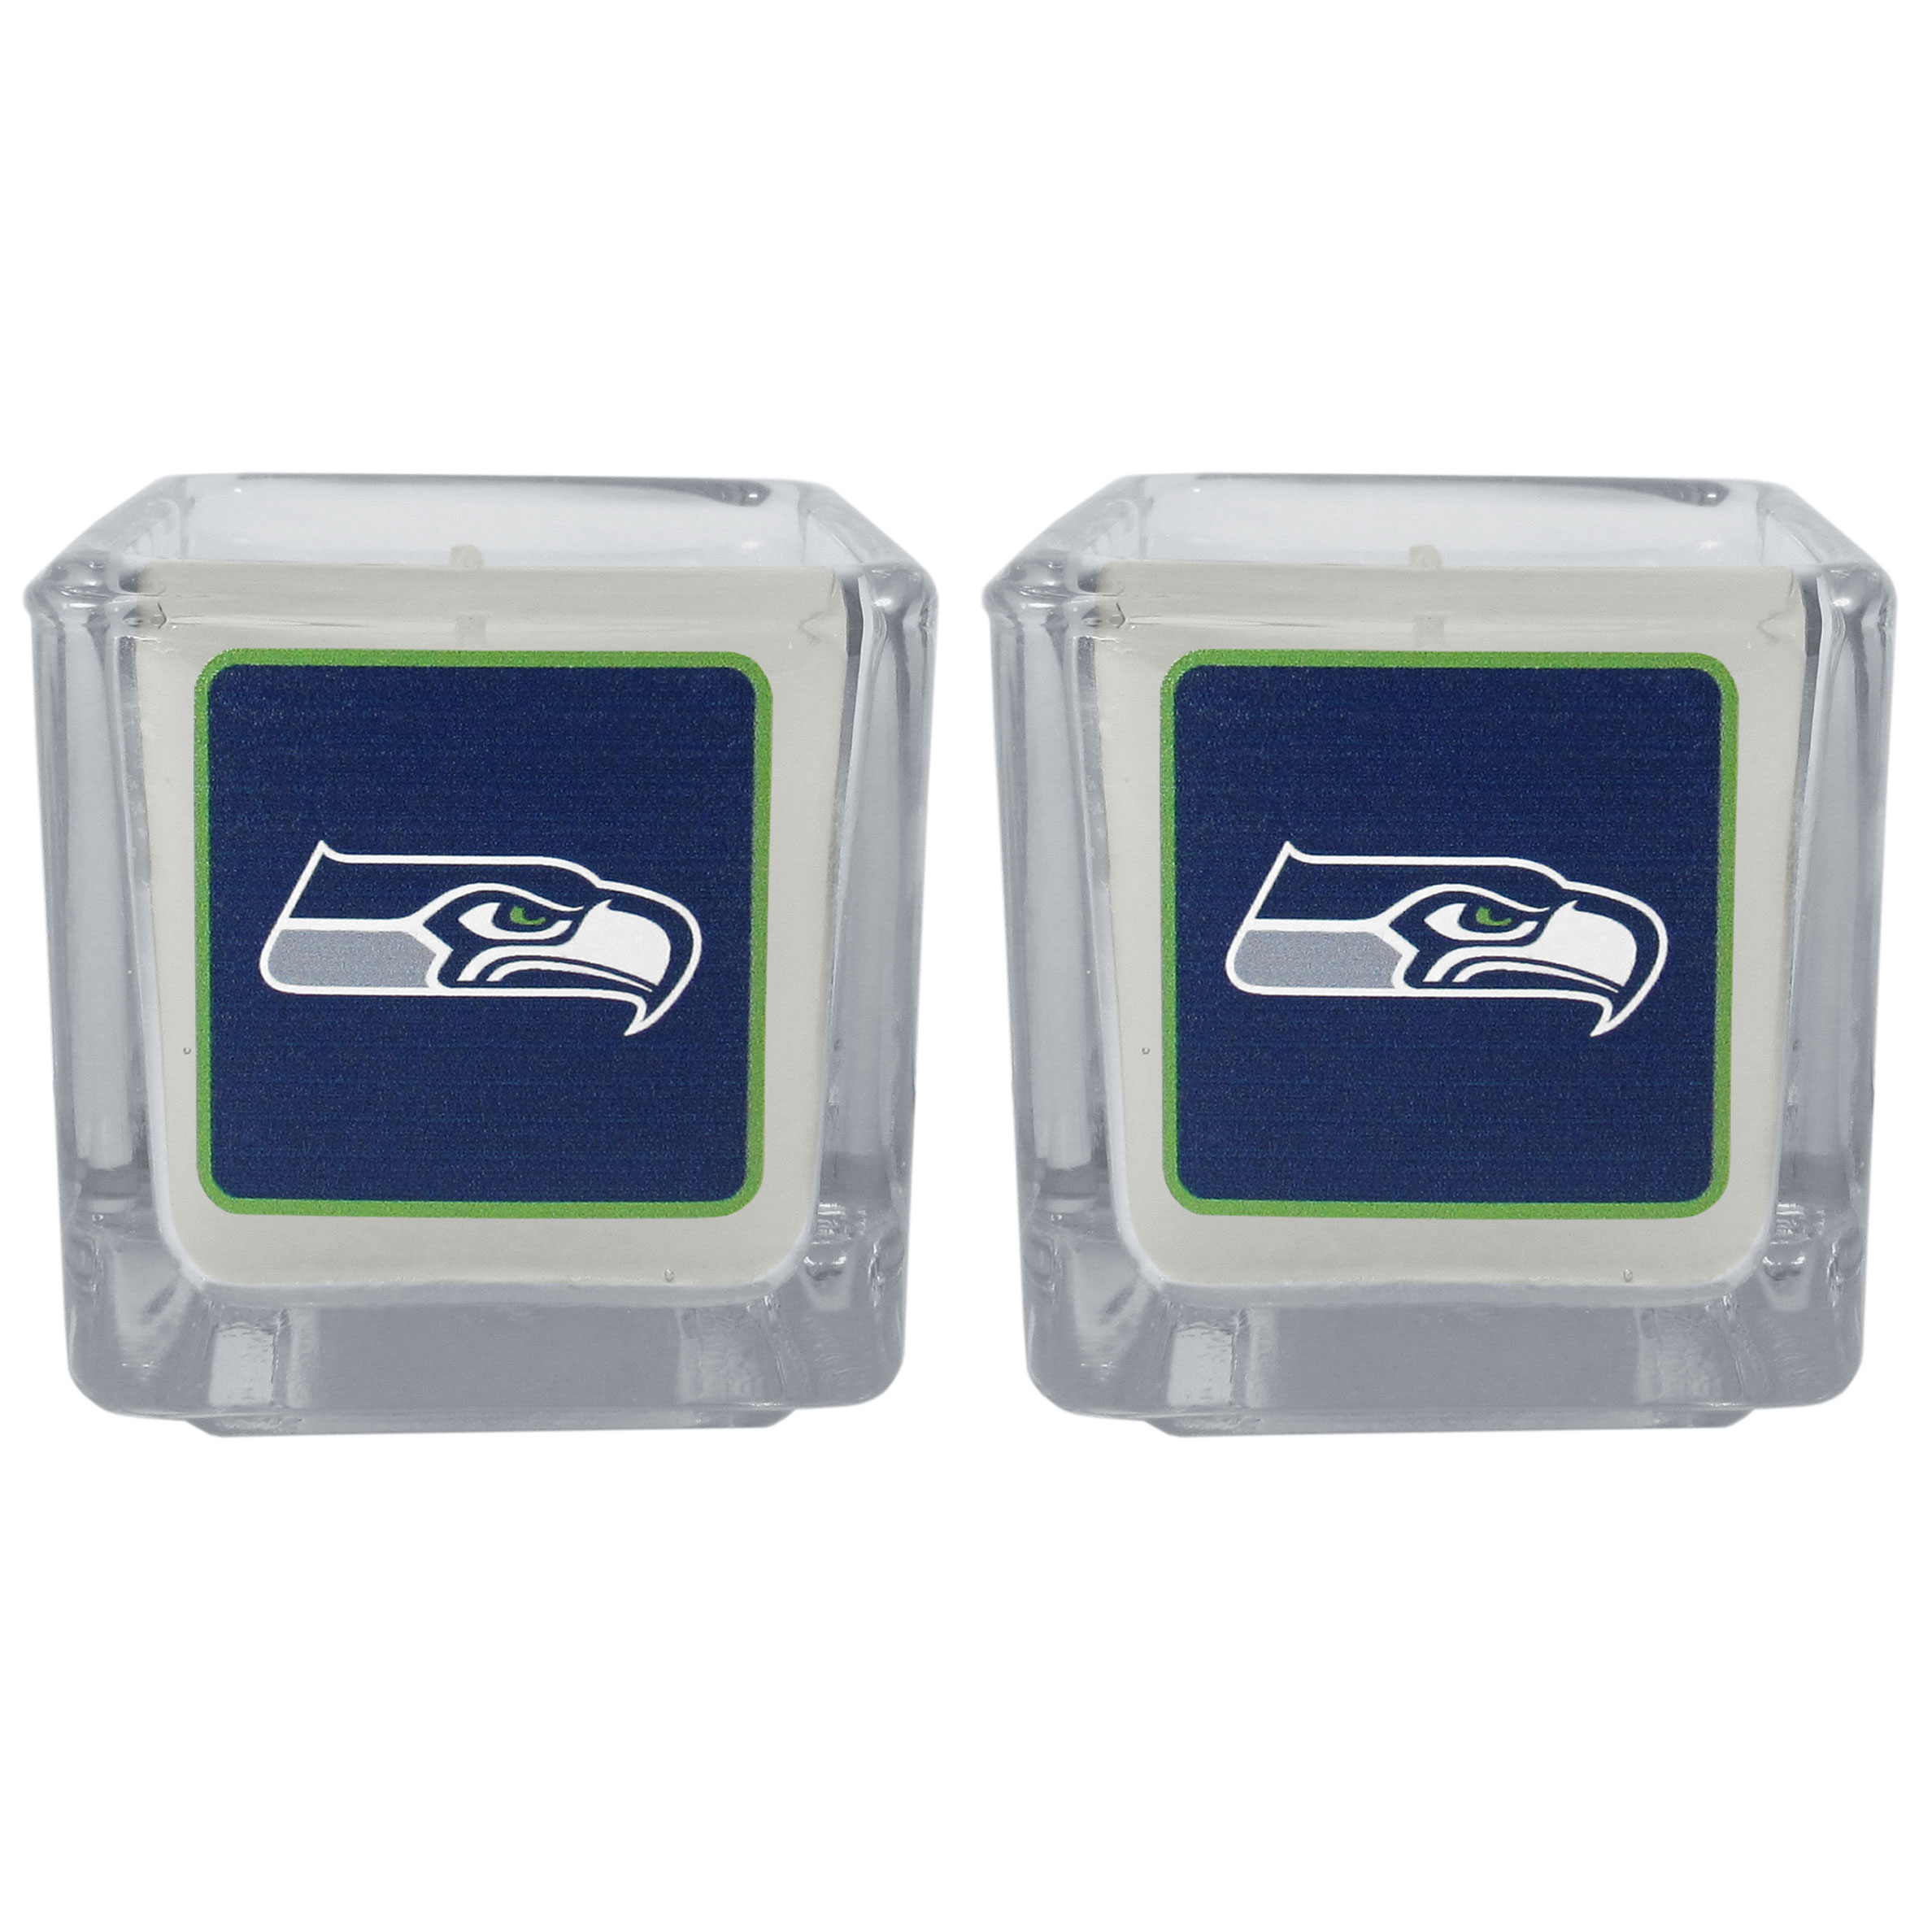 Seattle Seahawks Graphics Candle Set - Our candle set features 2 lightly vanilla scented candles with the Seattle Seahawks logo expertly printed on front. The candles are 2 inches tall in the votive style.